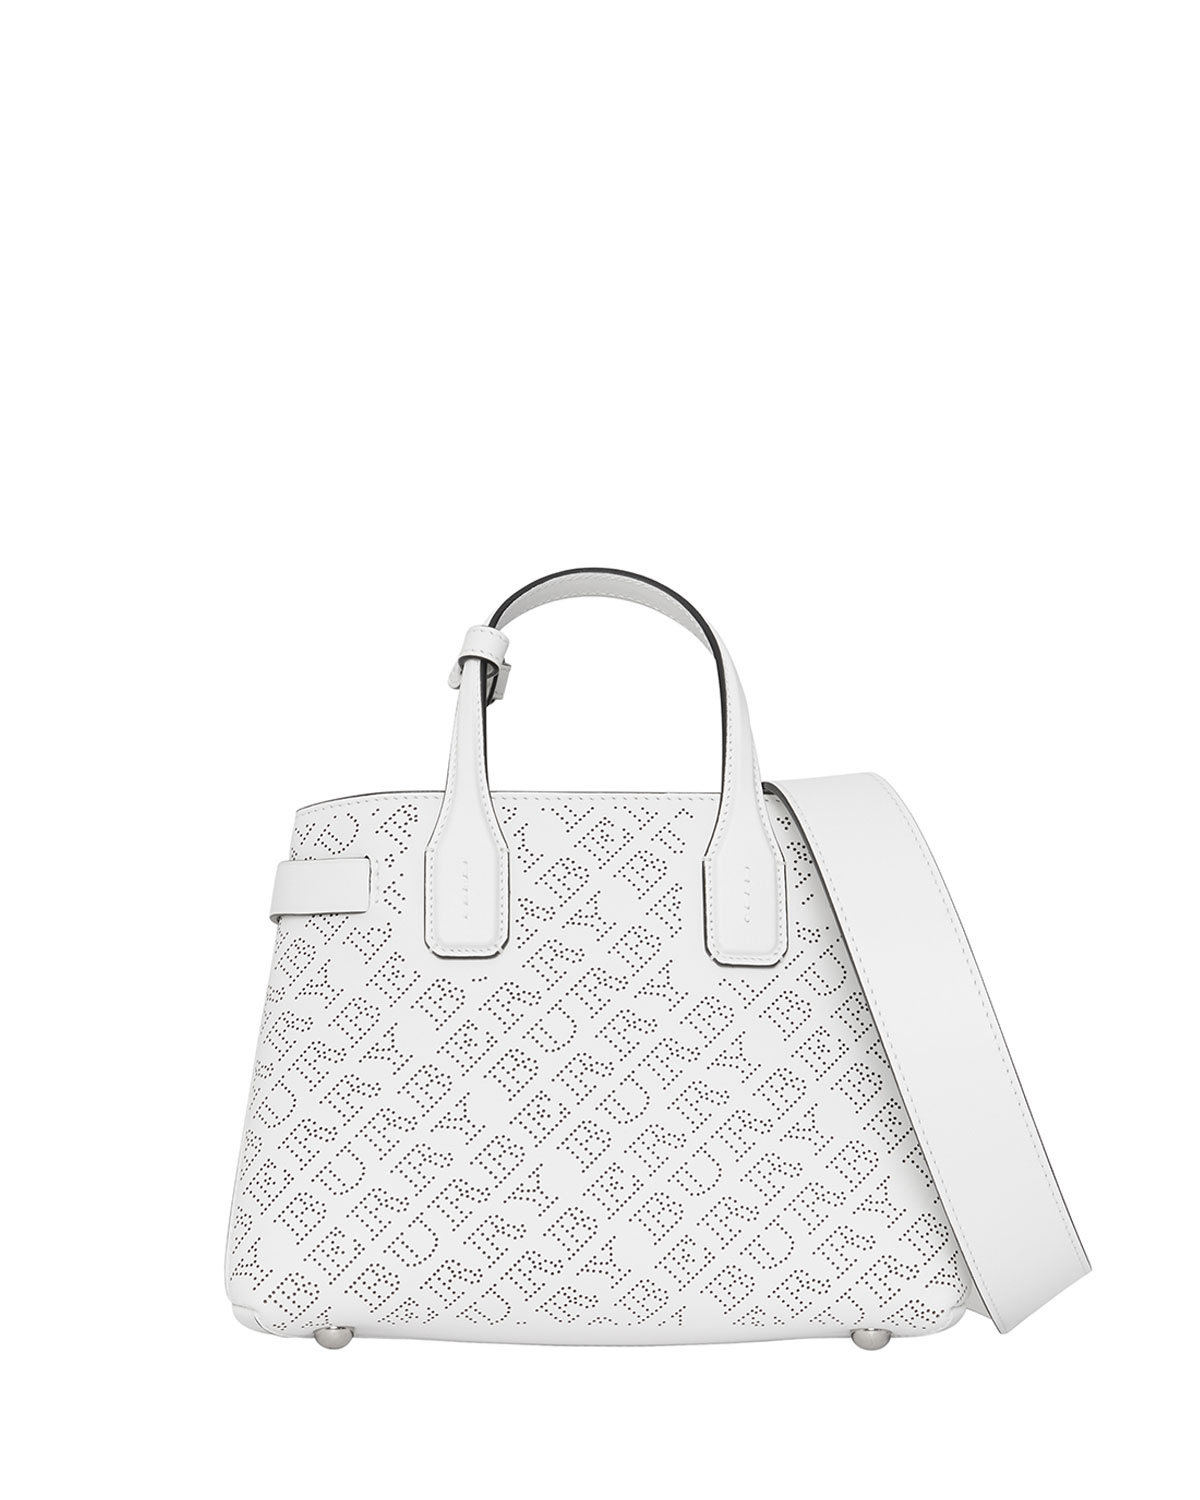 Burberry Banner Small Perforated Tote Bag f253837019e47